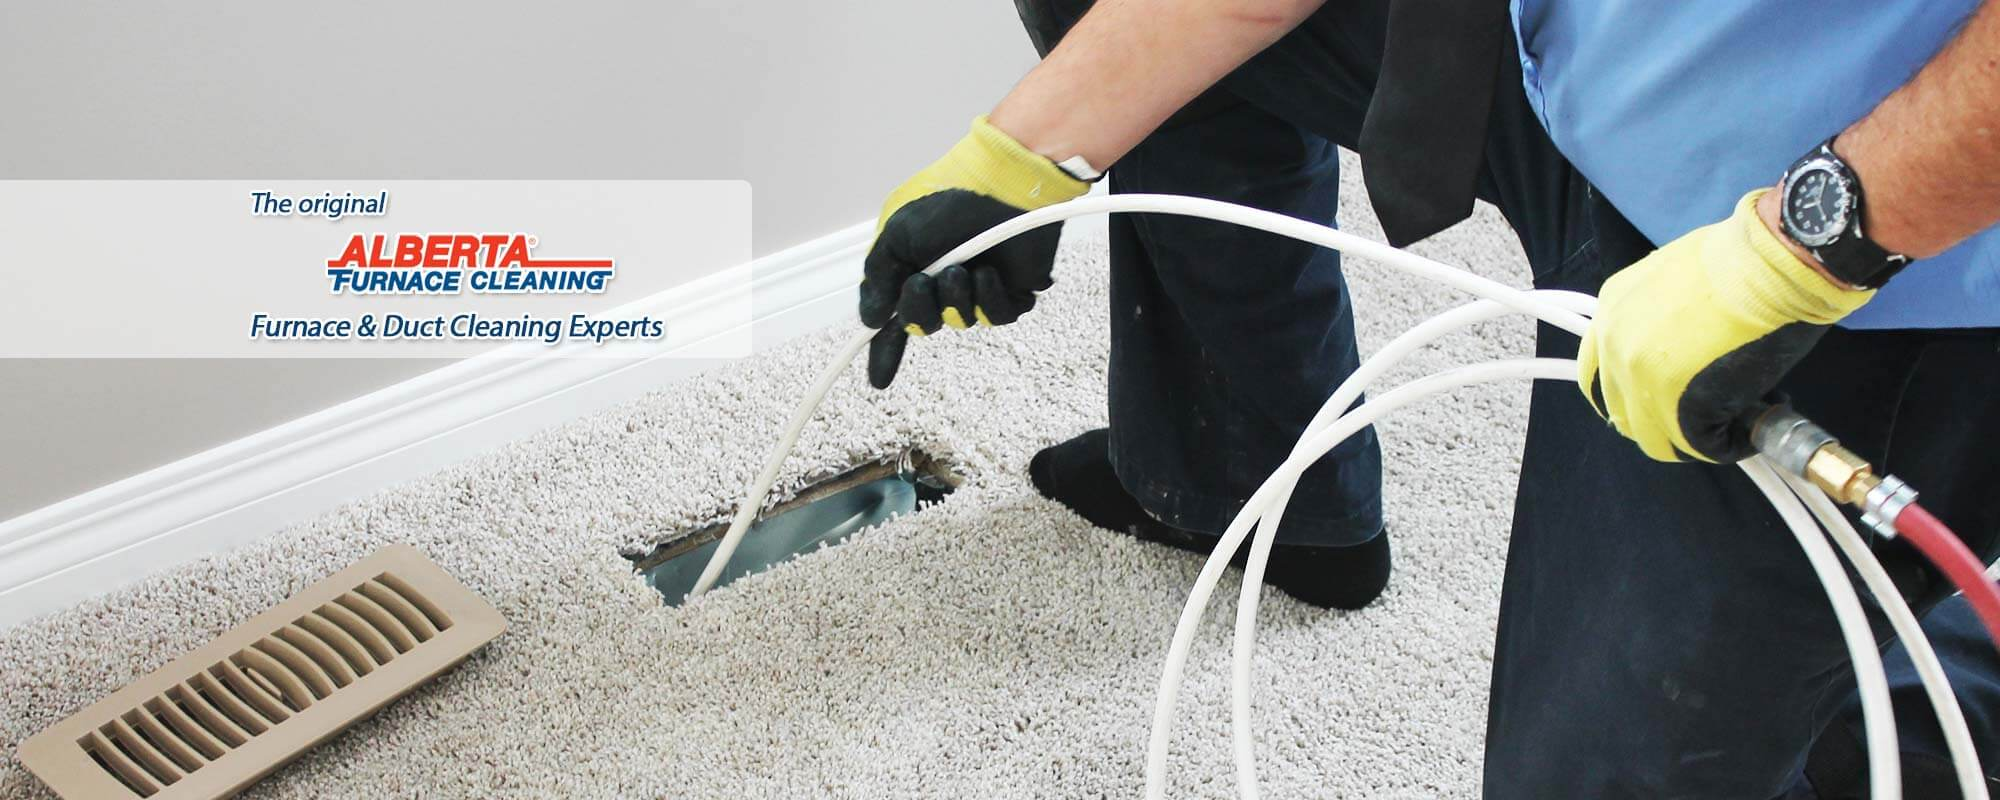 #3A6B91 Alberta Home Services Duct Cleaning And Carpet Cleaning Highly Rated 2379 Duct Cleaning Certification wallpapers with 2000x800 px on helpvideos.info - Air Conditioners, Air Coolers and more